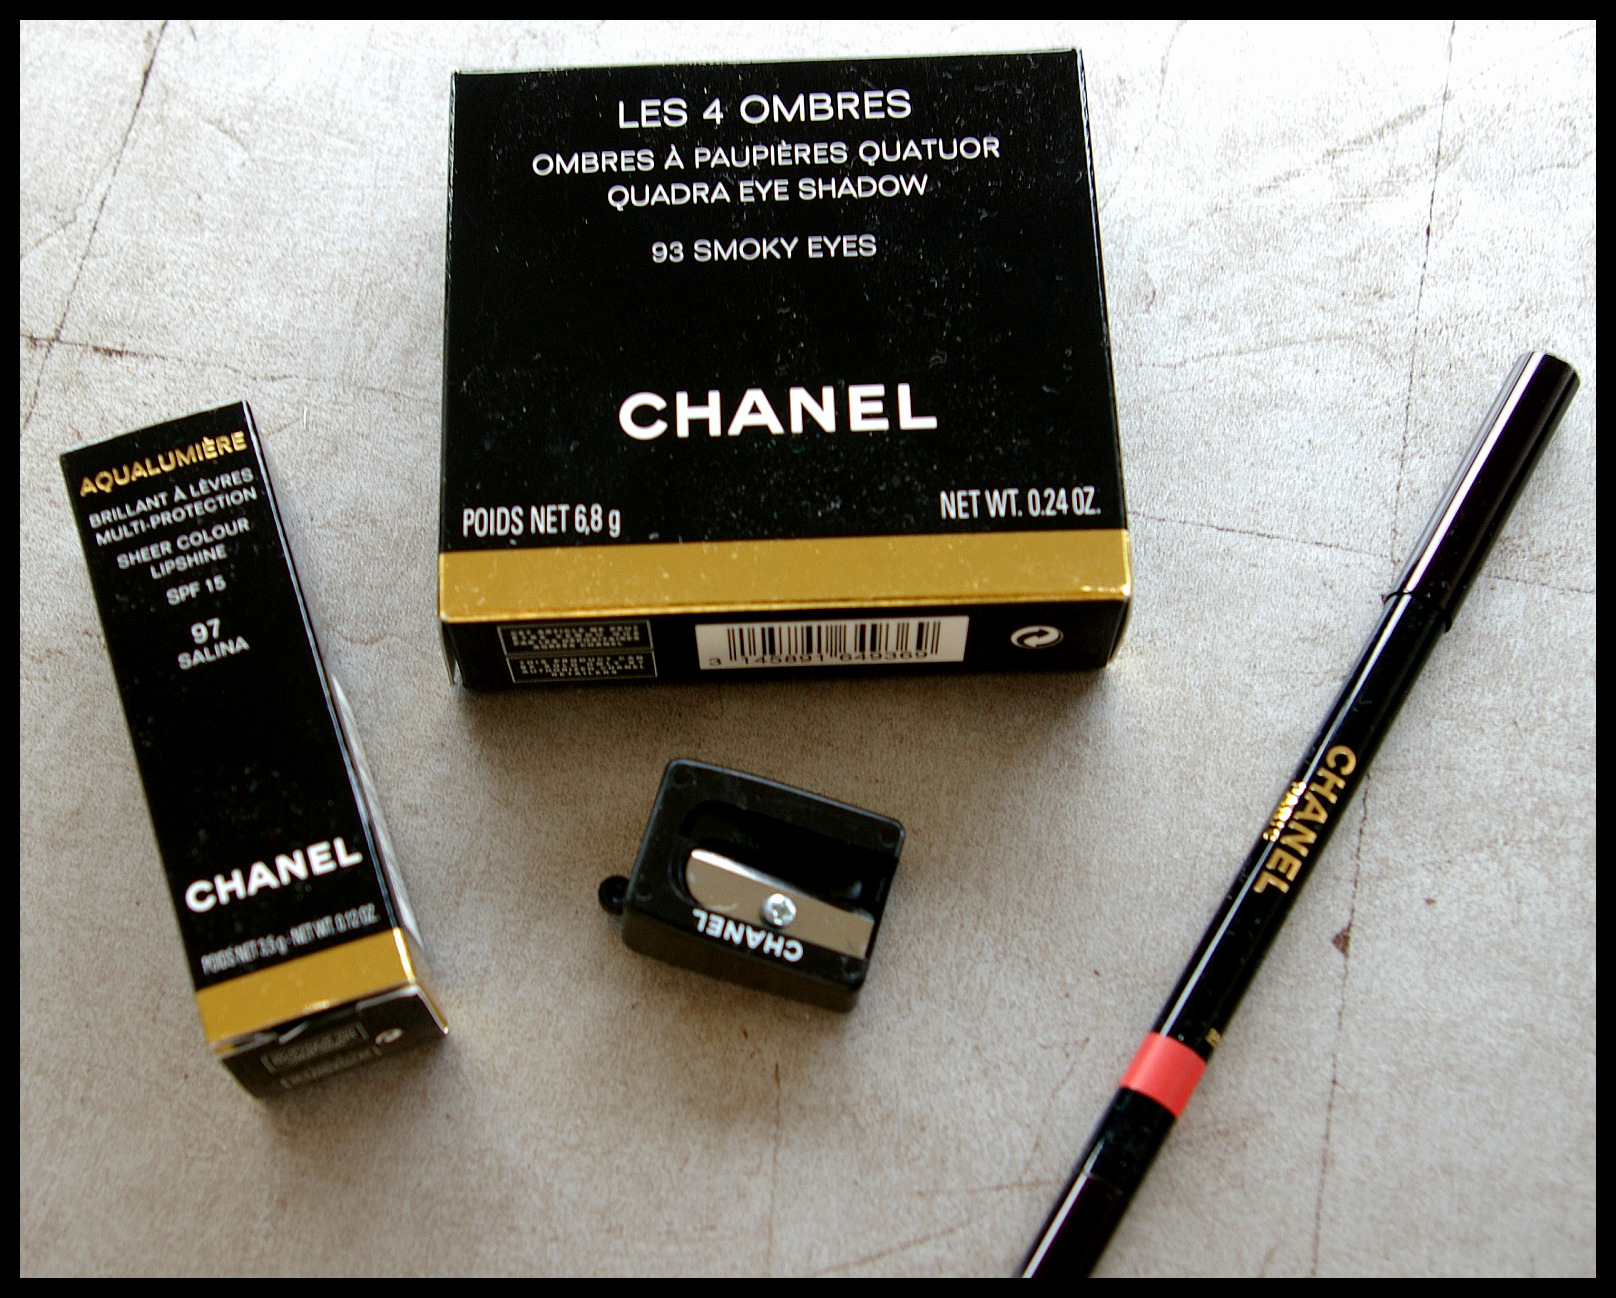 chanelpackagings.jpg